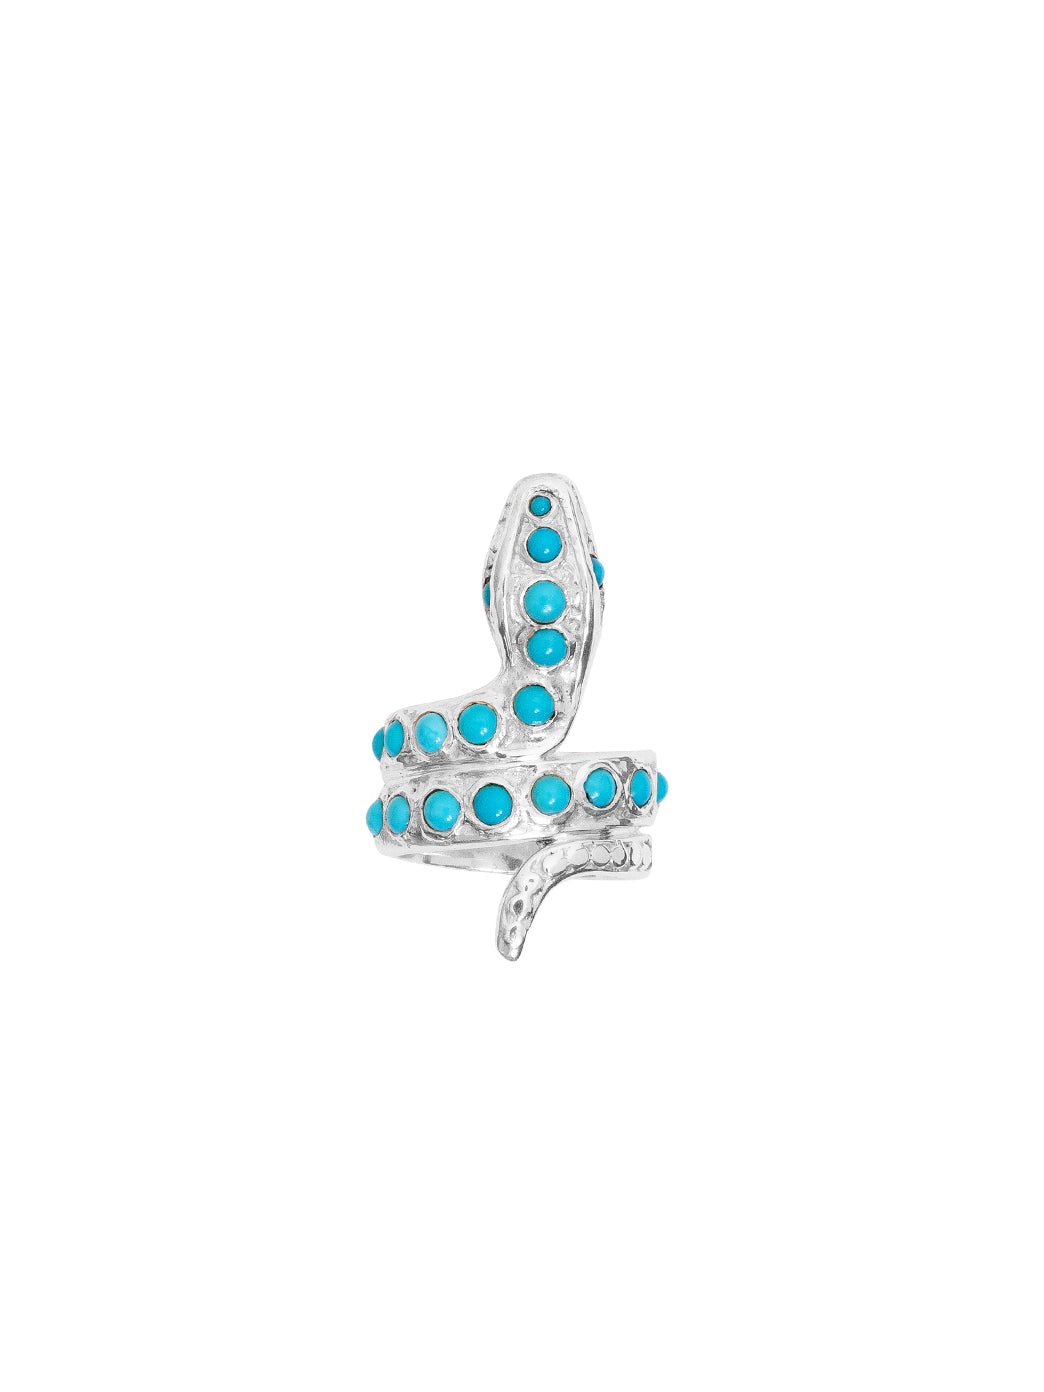 Fiorina Jewellery Turquoise Snake Ring